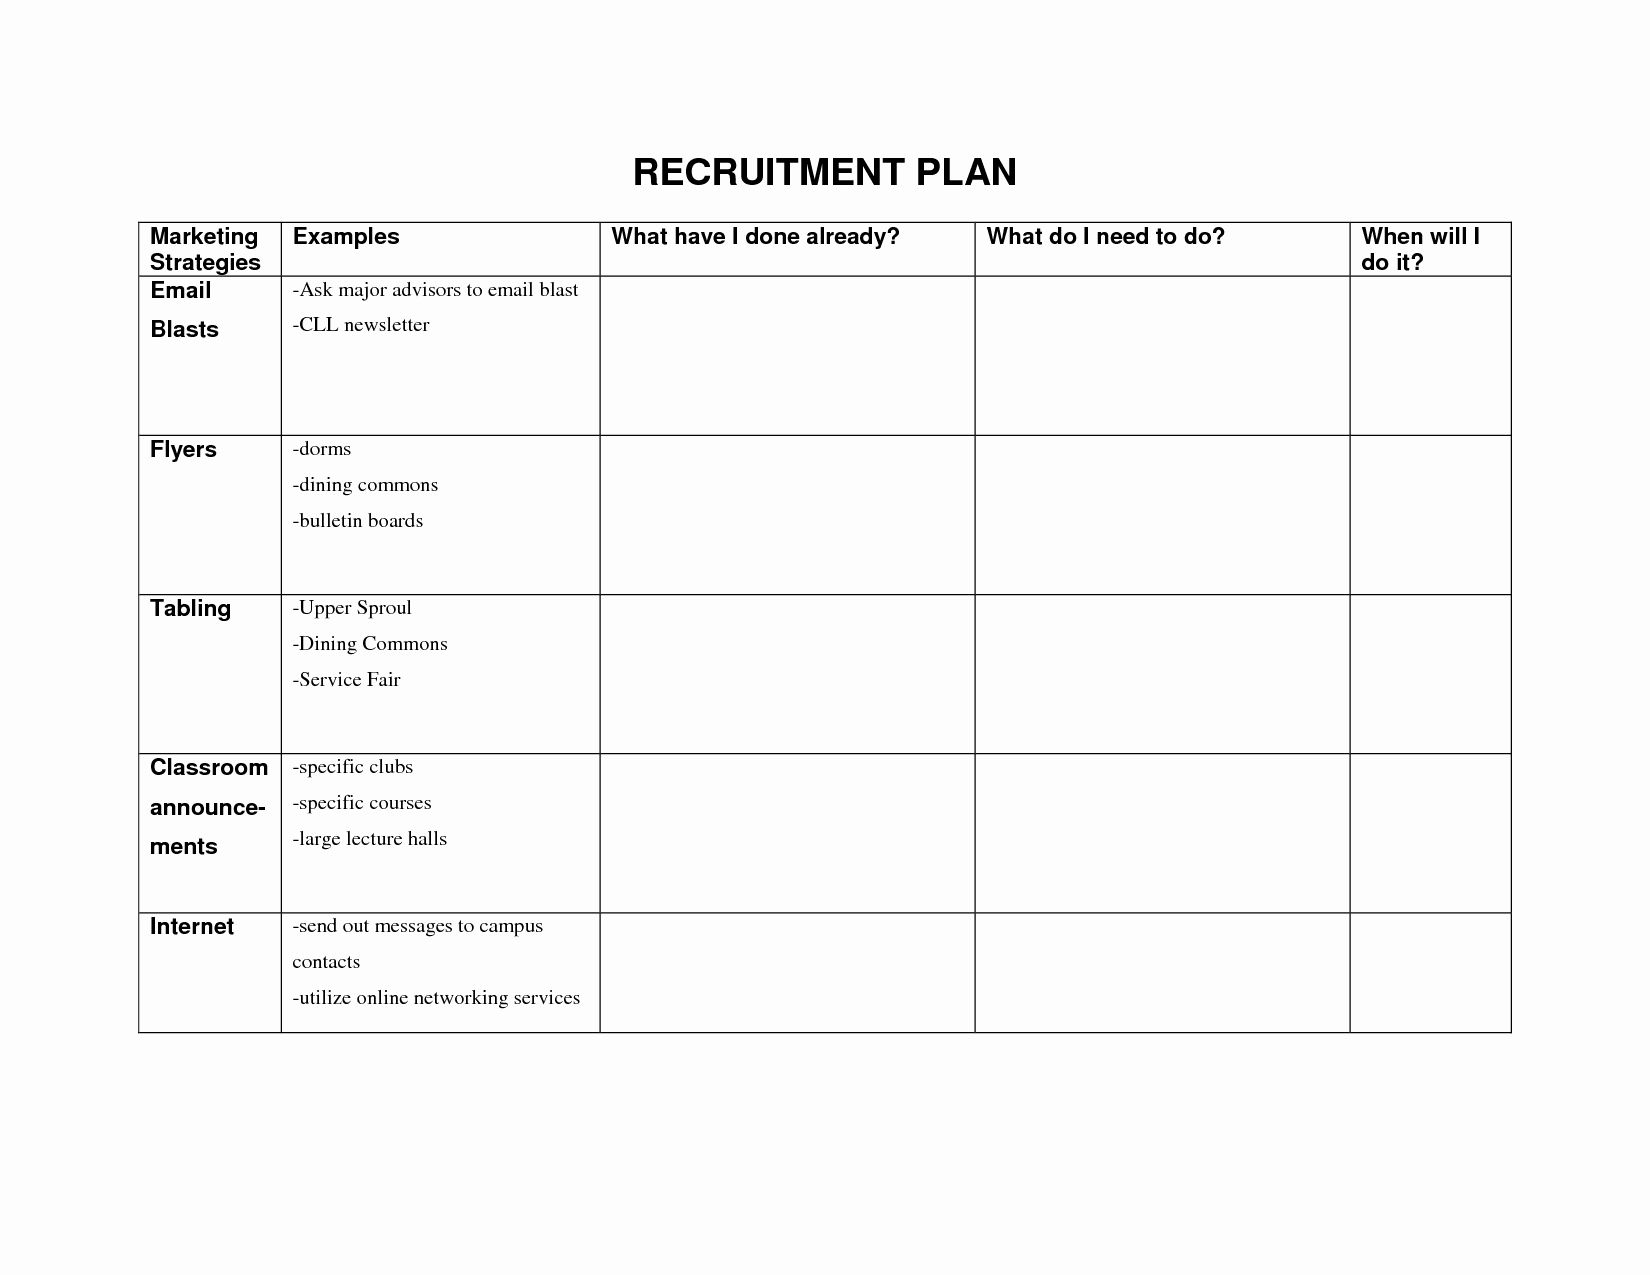 Recruiting Strategic Plan Template Best Of Recruitment forms and Templates Recruiter forms